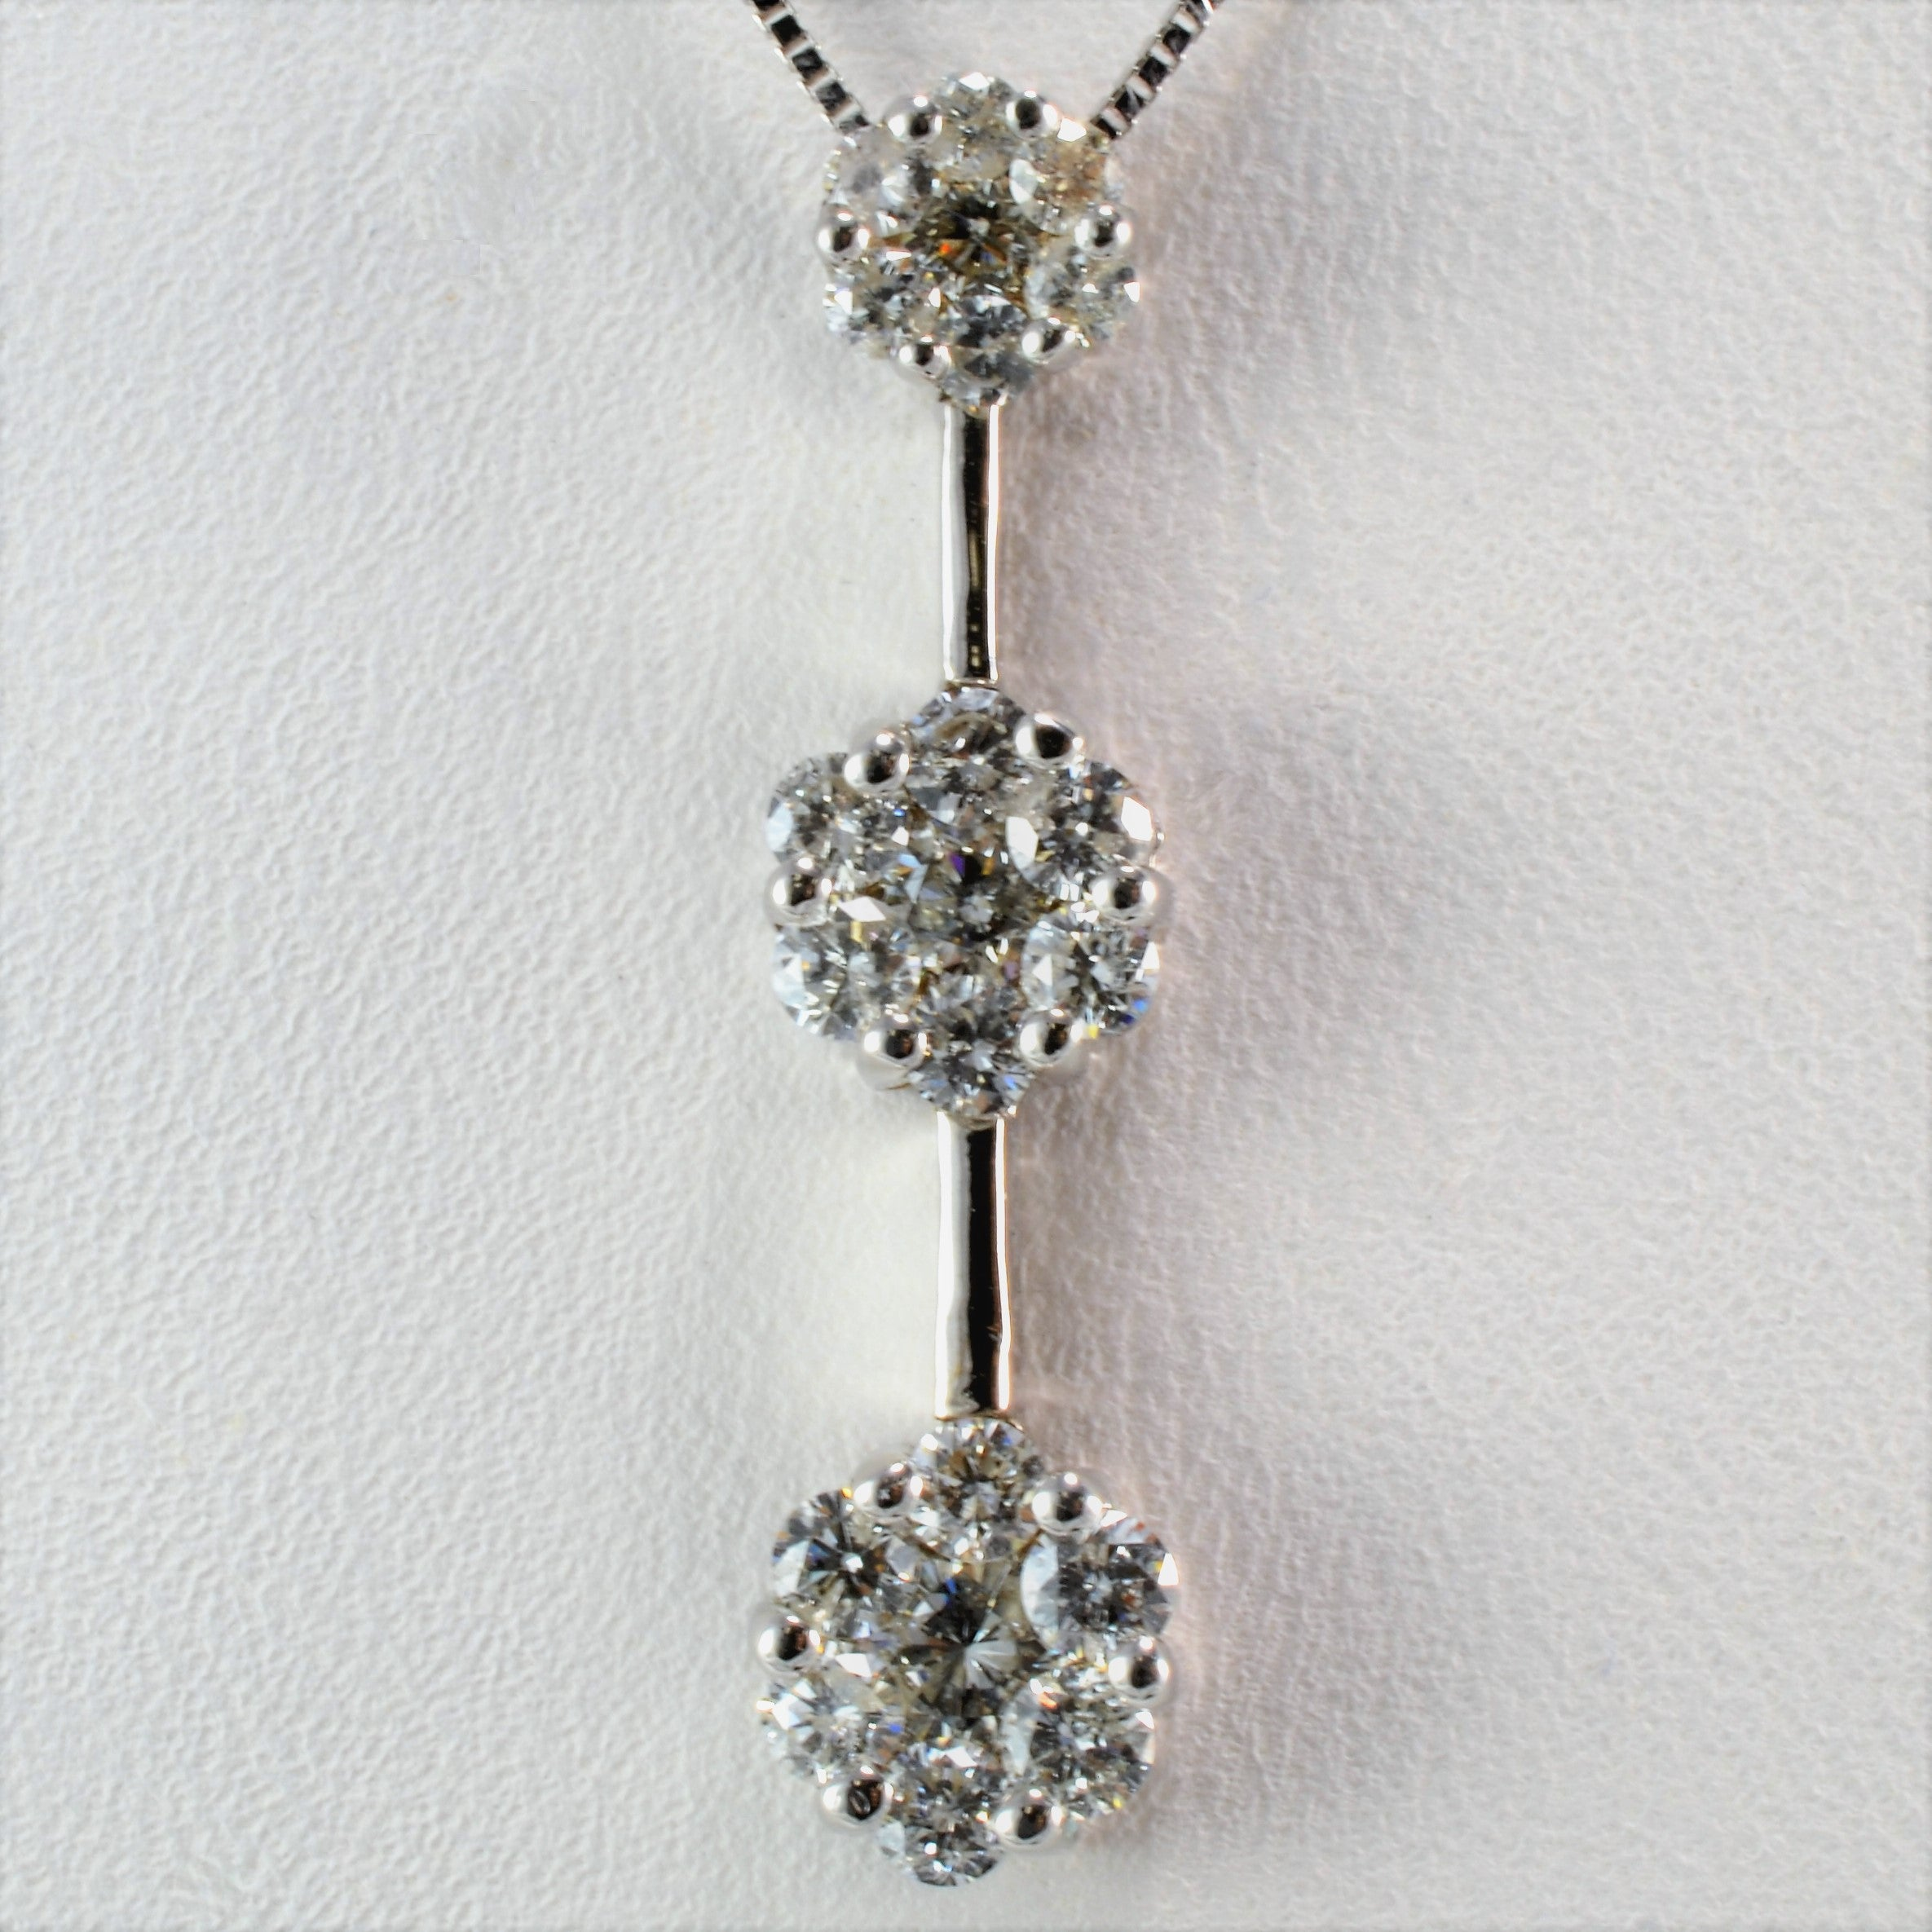 Diamond Cluster Drop Necklace | 0.78 ctw, 18"